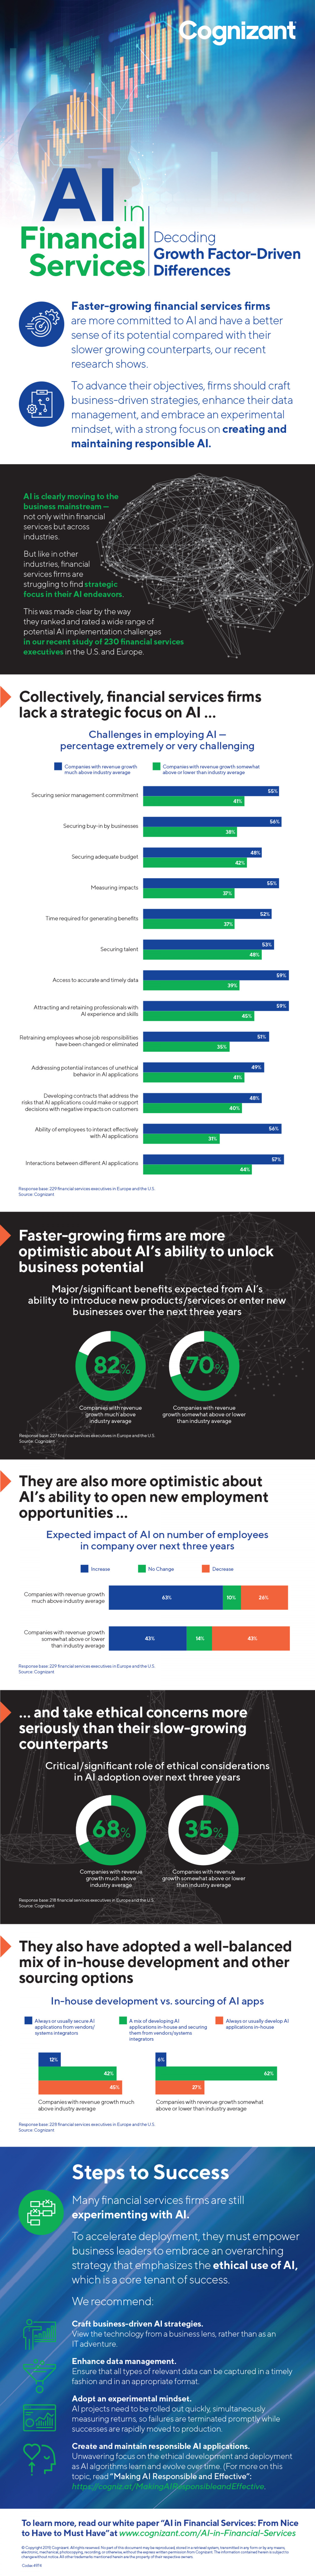 Why Faster-Growing Firms are Leading the AI Race in Financial Services  Infographic